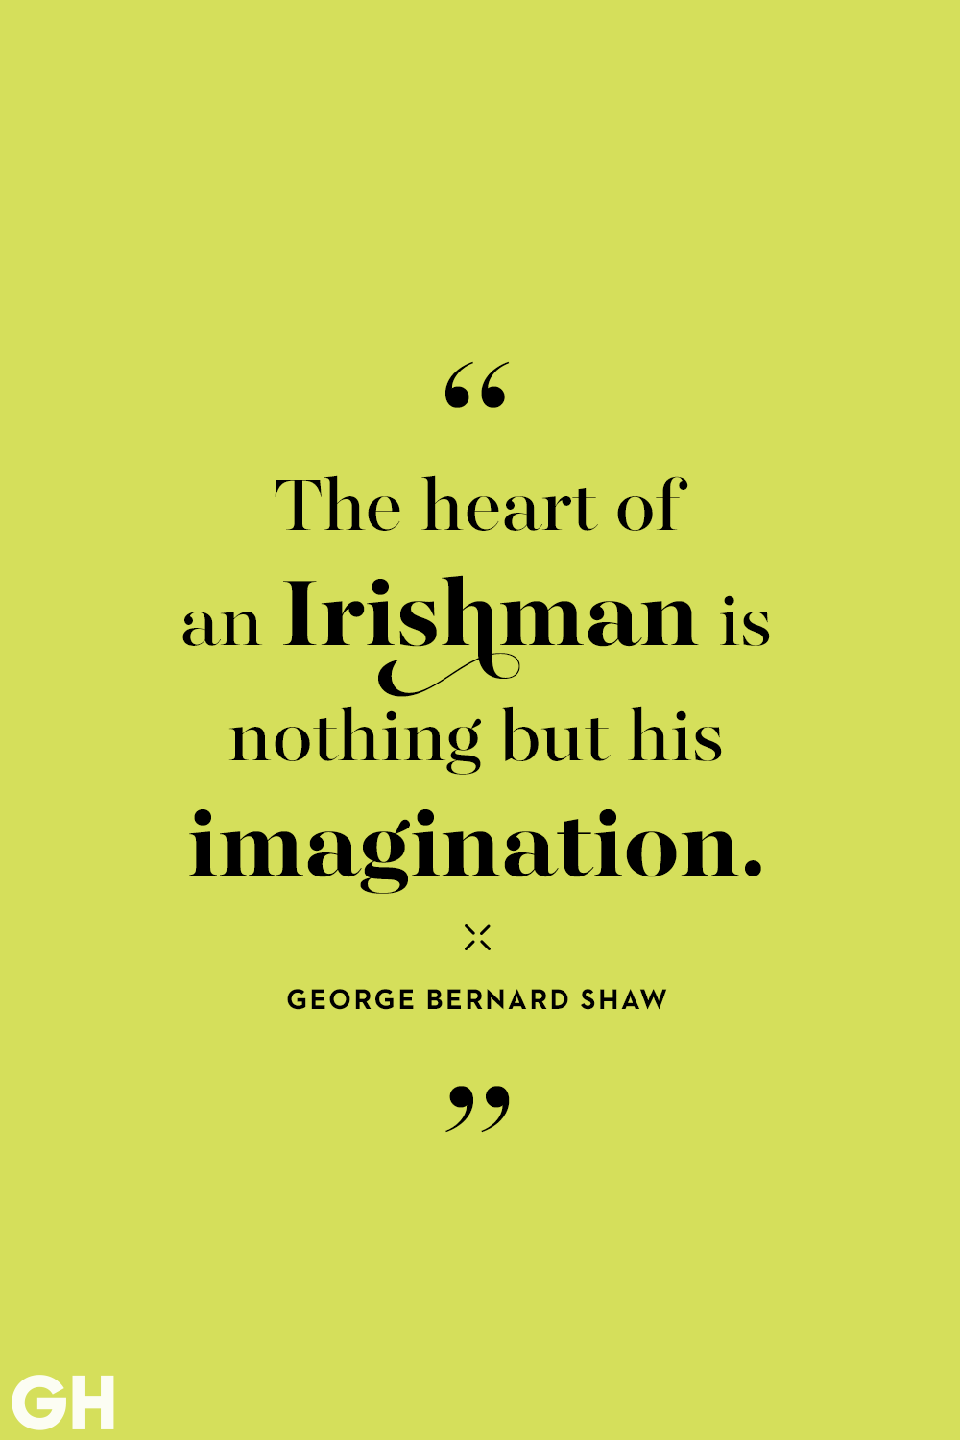 <p>The heart of an Irishman is nothing but his imagination. </p>